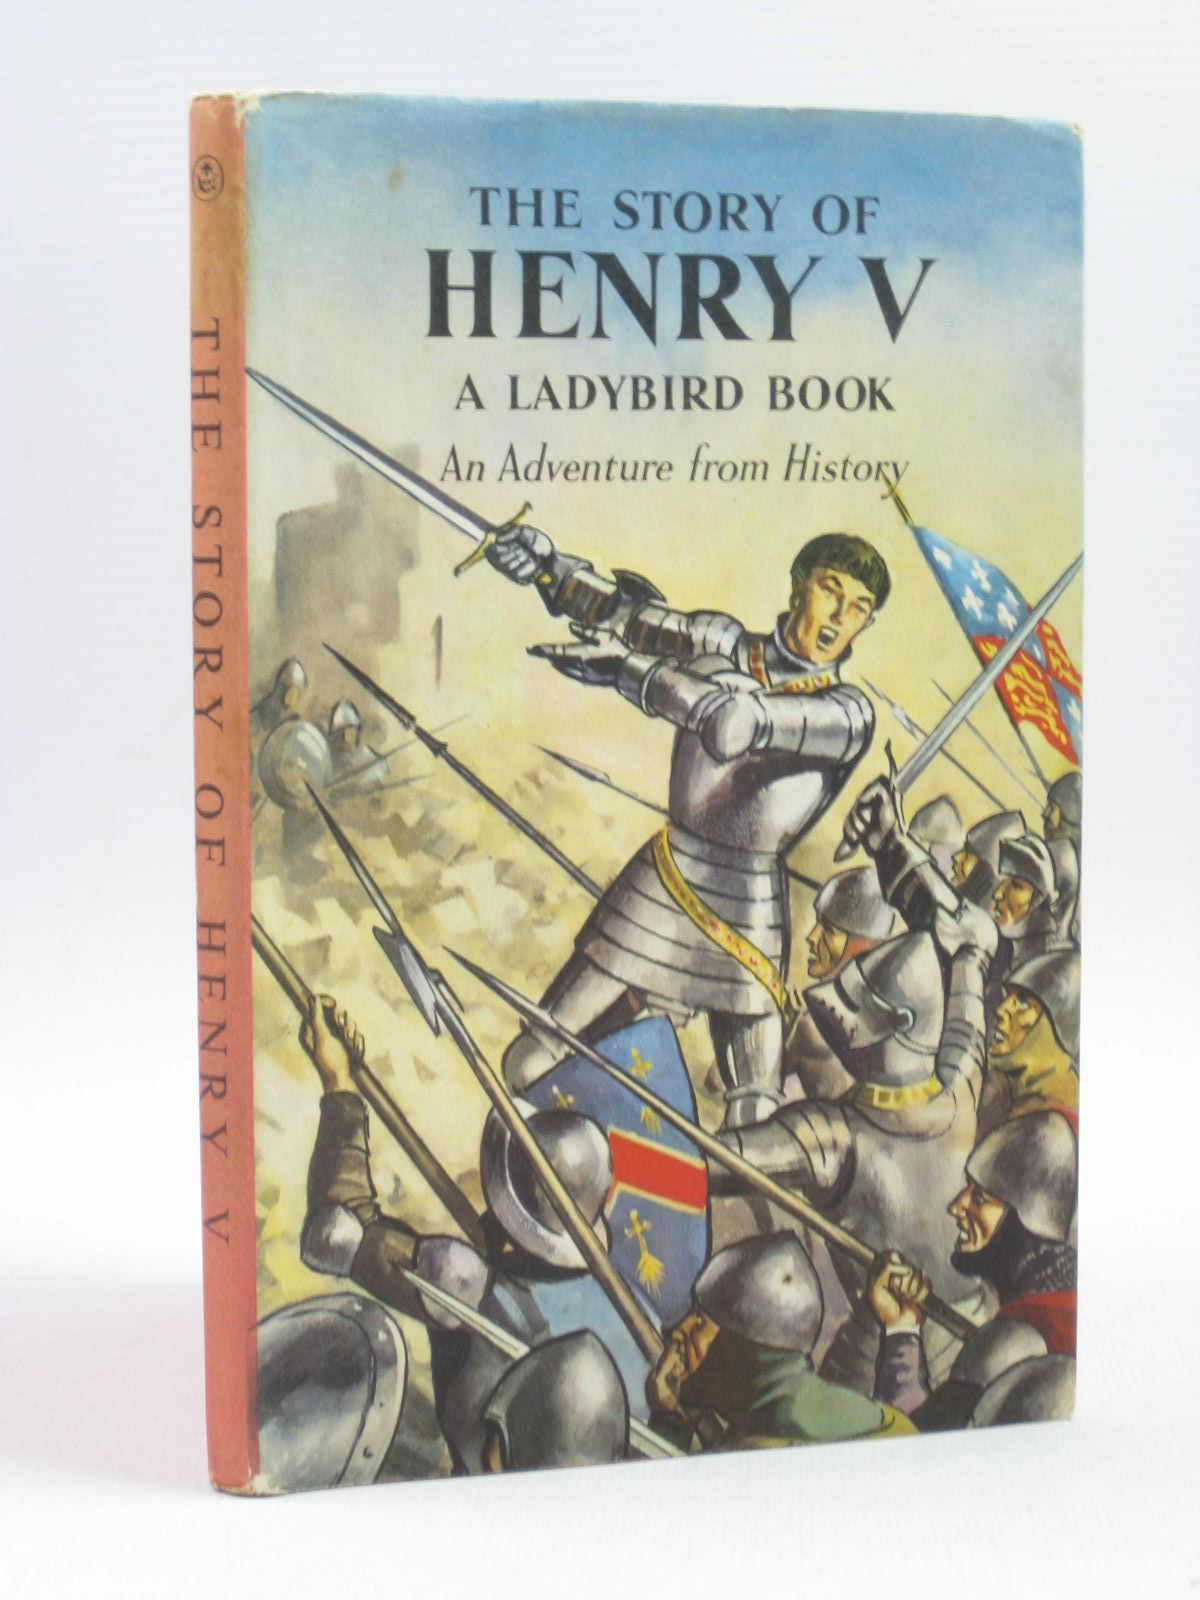 Photo of THE STORY OF HENRY V written by Peach, L. Du Garde illustrated by Kenney, John published by Wills & Hepworth Ltd. (STOCK CODE: 1403705)  for sale by Stella & Rose's Books